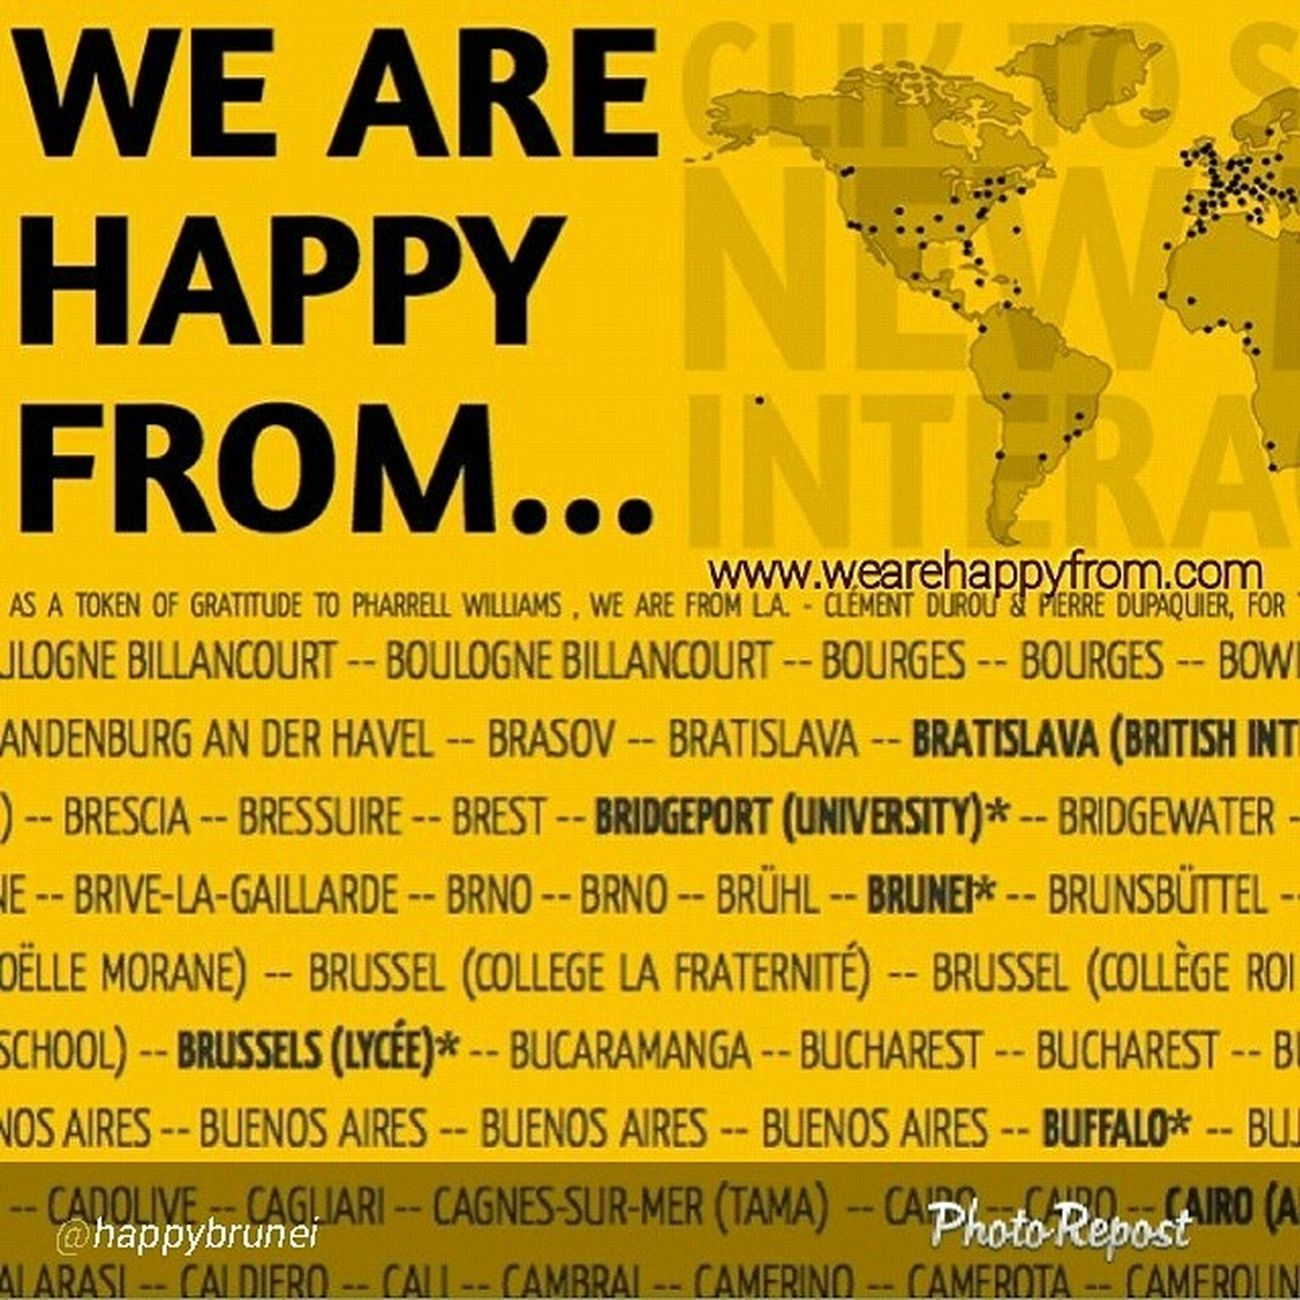 """By @happybrunei """"Hurray! We are now listed at www.wearehappyfrom.com where you can find (so far) 1950 Happy videos from 153 countries which equals to 141 hrs 46 mins of shared happiness. So if you've got time to kill, you should go and check out the site. And on another note, we now have nearly 20k views of Happy Brunei. Thanks for the love y'all! Wearehappybrunei HappyBrunei Brunei Wearehappyfrom """""""